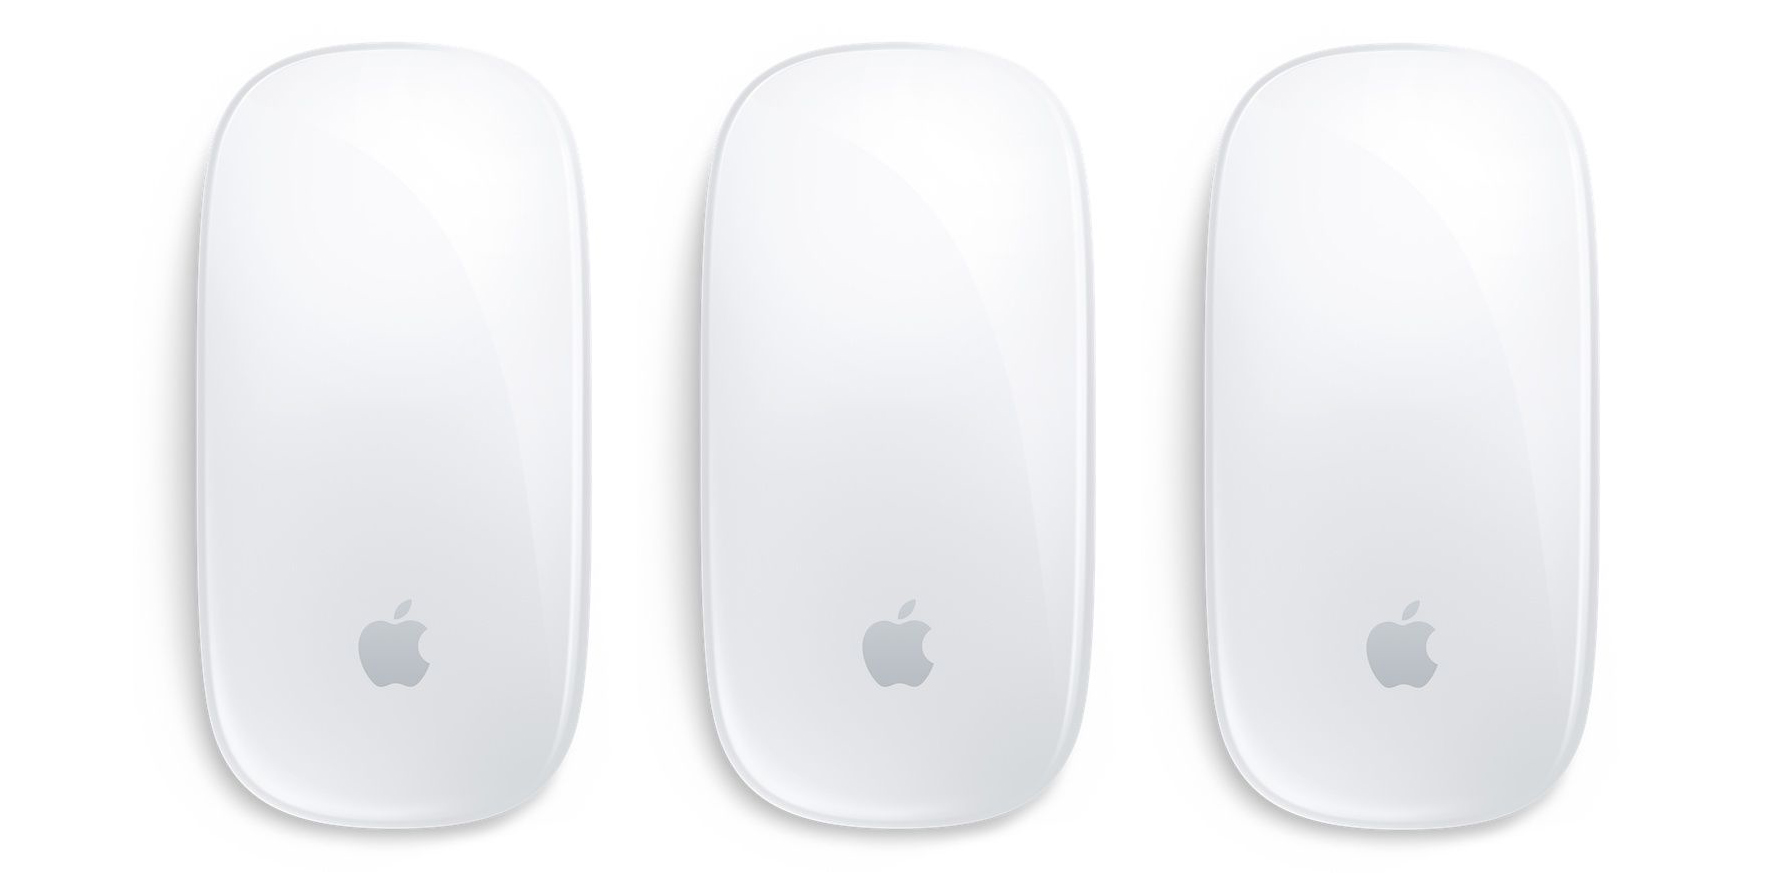 Apple Magic Mouse 2 delivers gesture control and more for $67 (Reg. $79, Amazon all-time low)